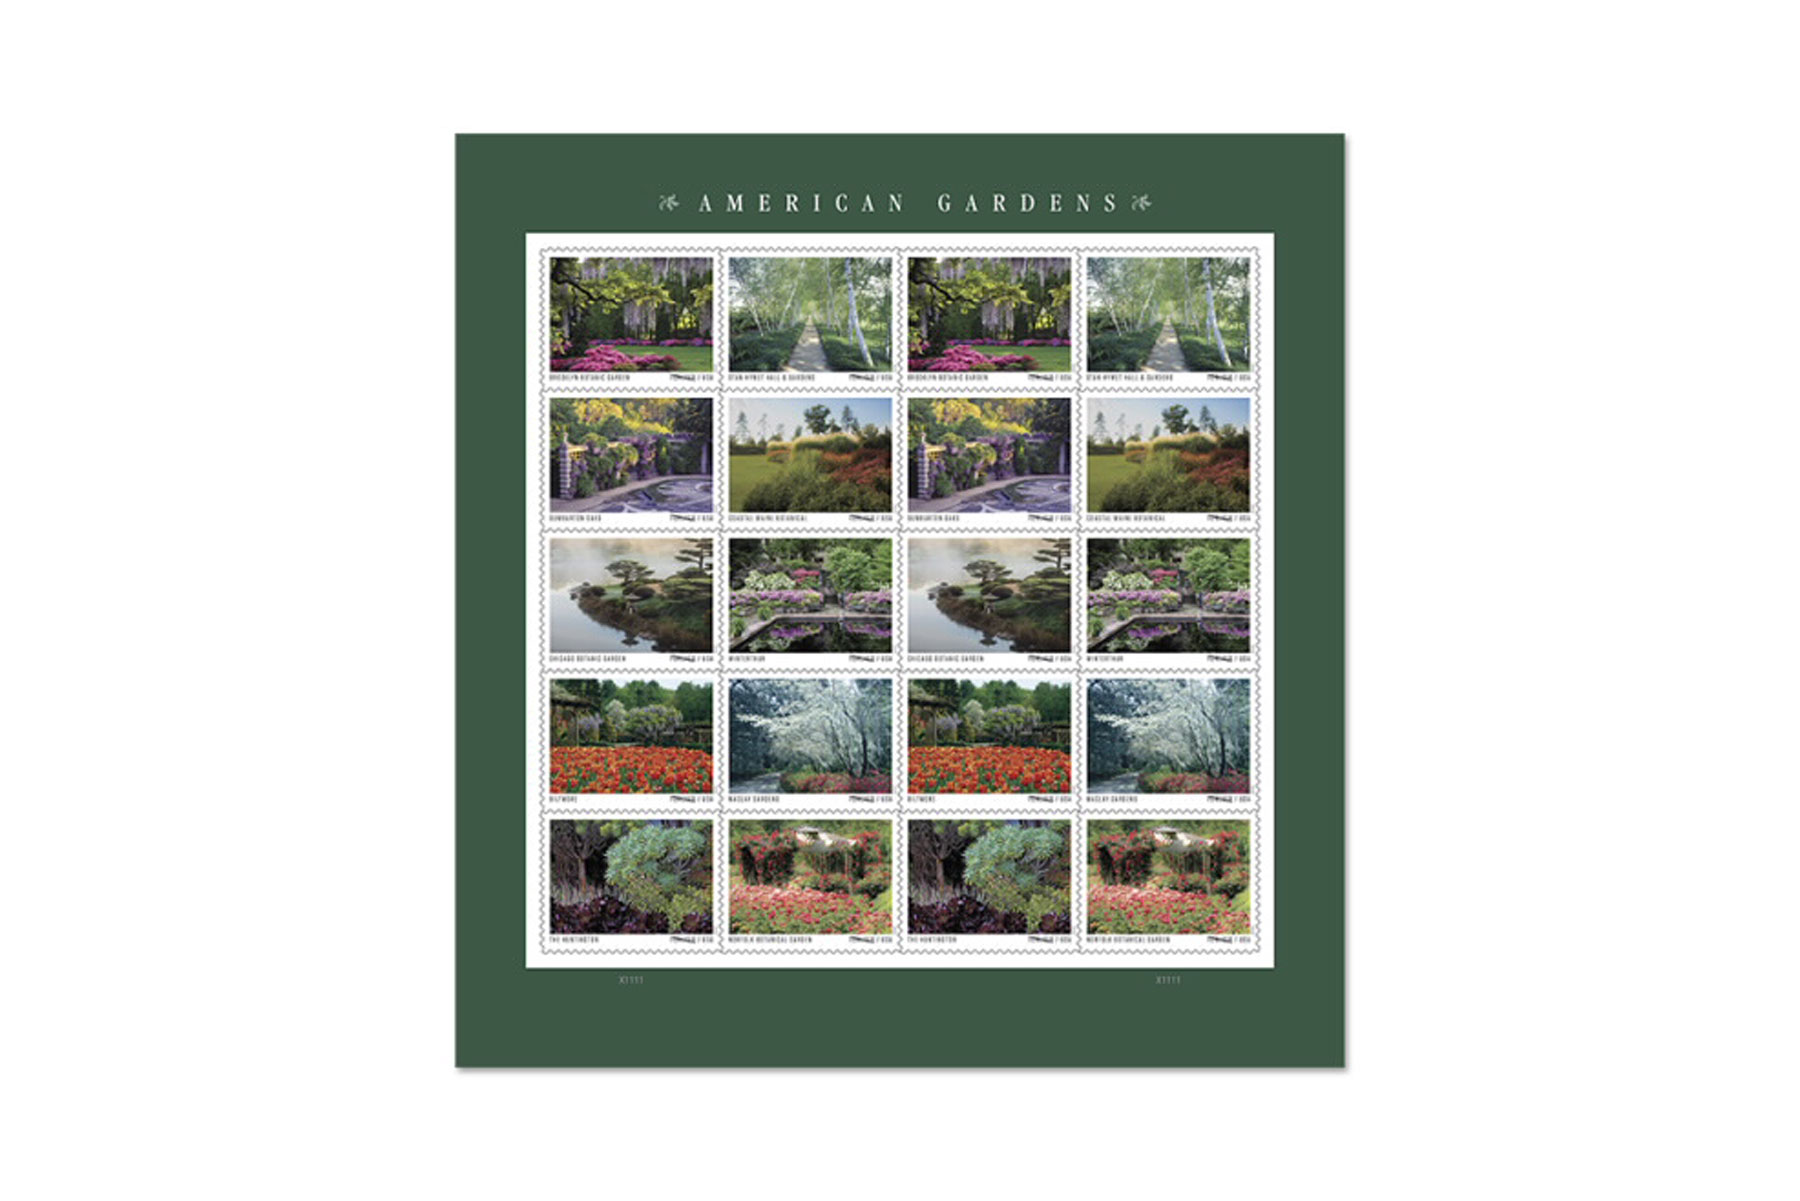 Sheet of garden-themed stamps